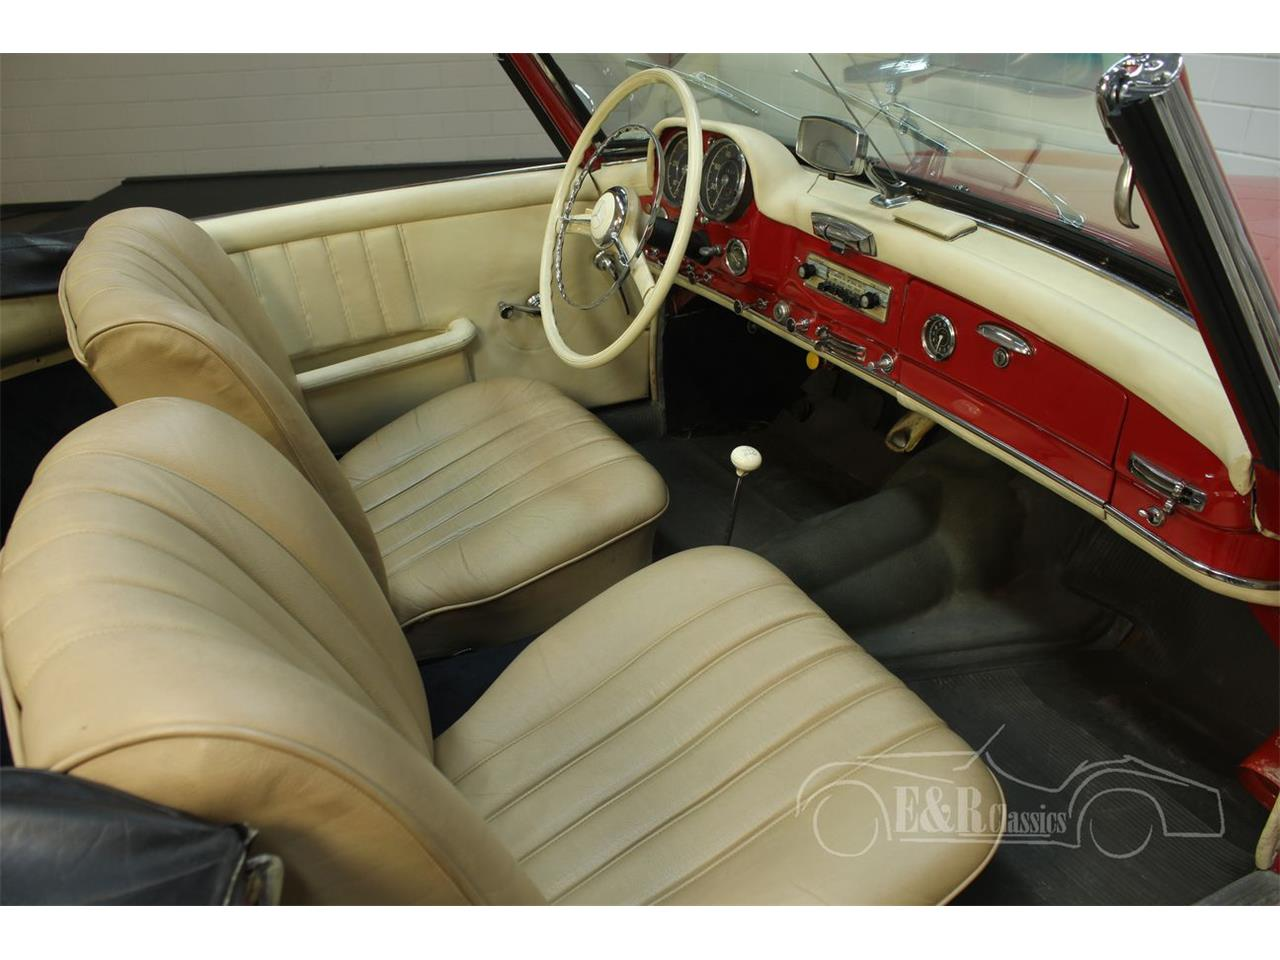 Large Picture of '56 190SL located in - Keine Angabe - Offered by E & R Classics - PH44